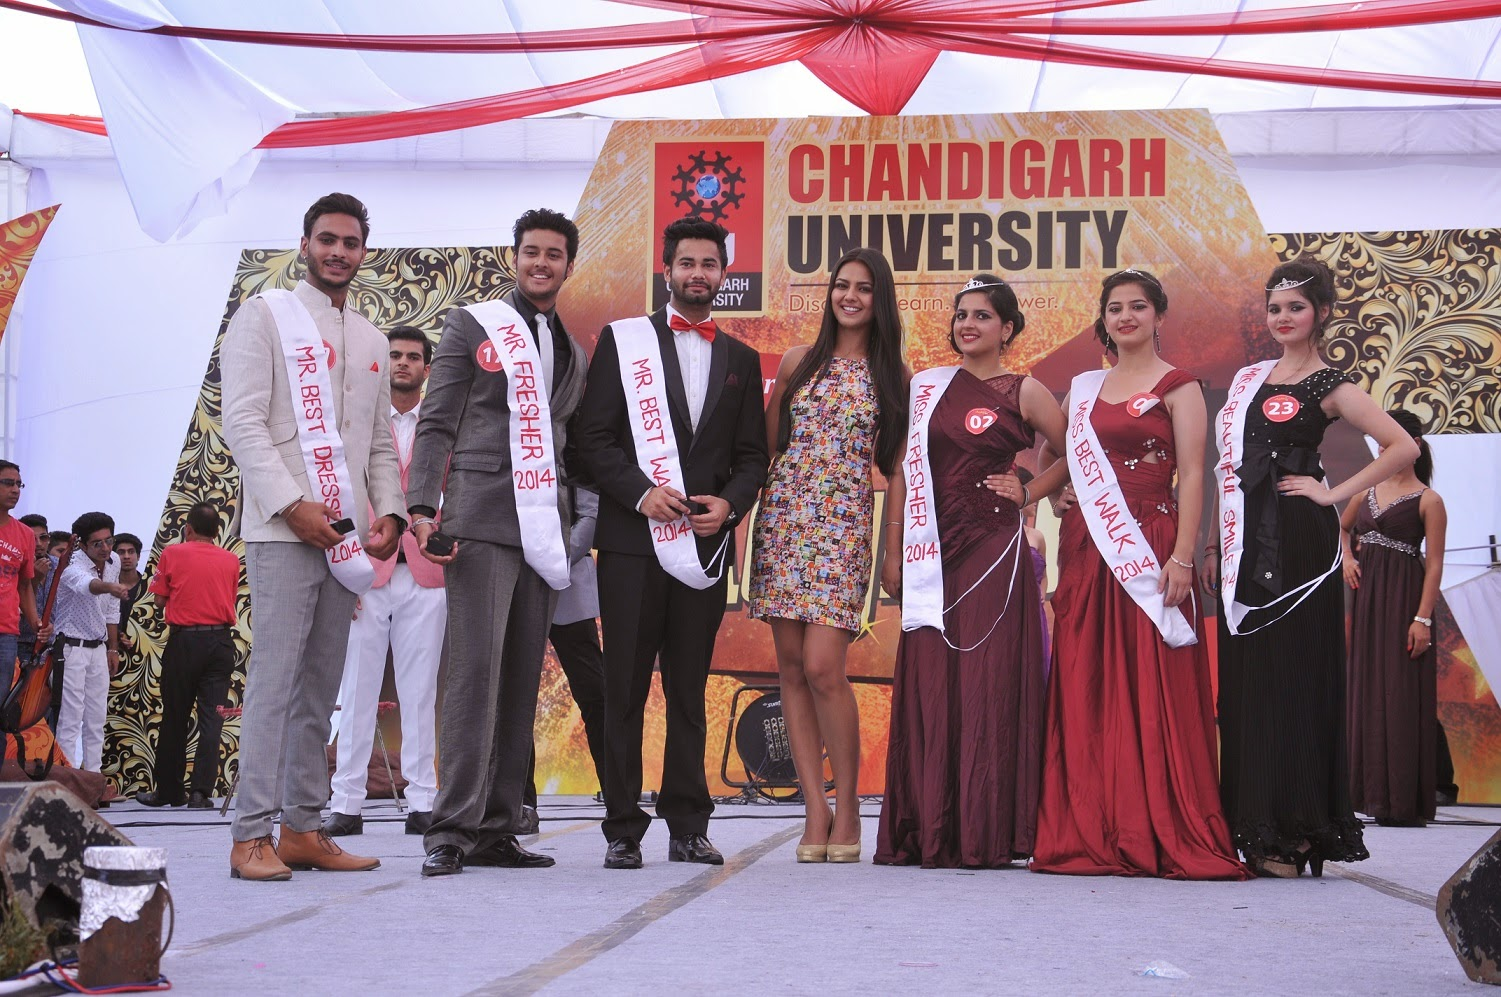 Chandigarh University Fresher's Party